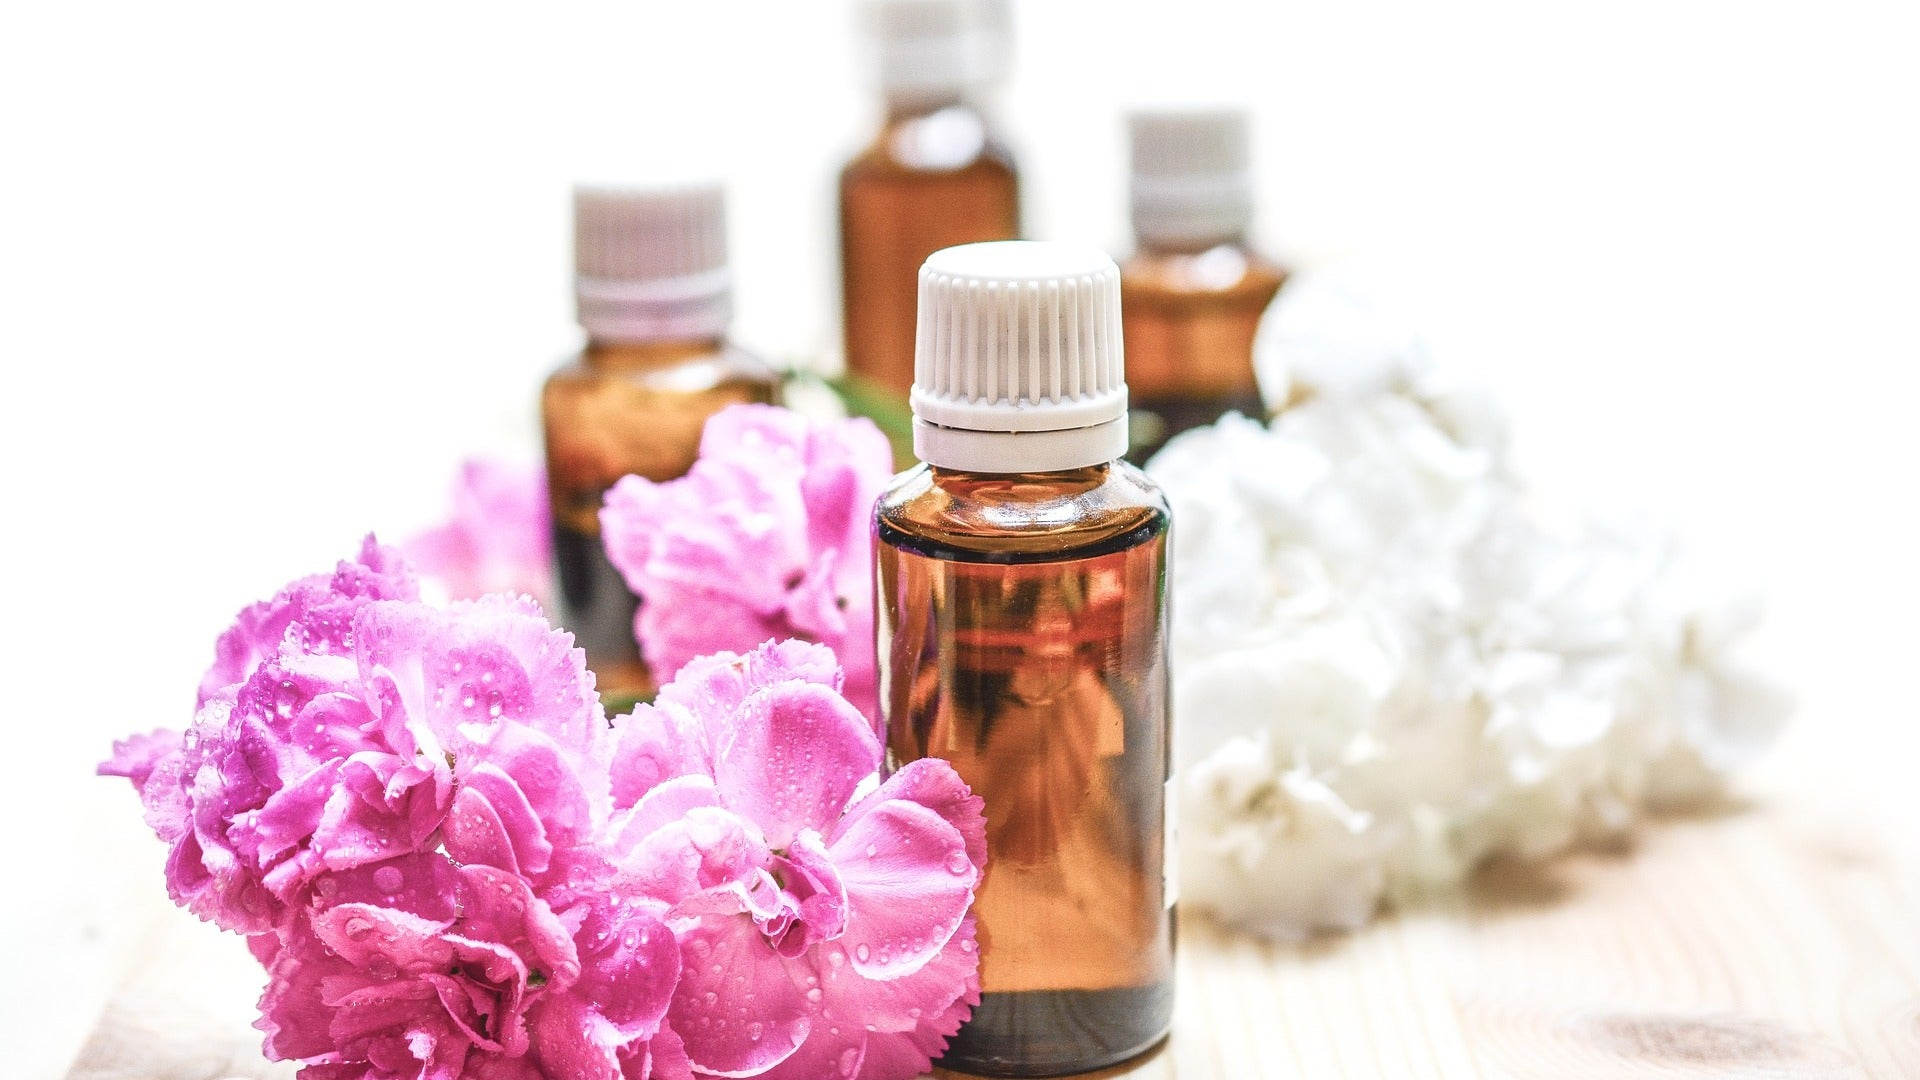 Make Your Garbage Smell Pretty With Essential Oils